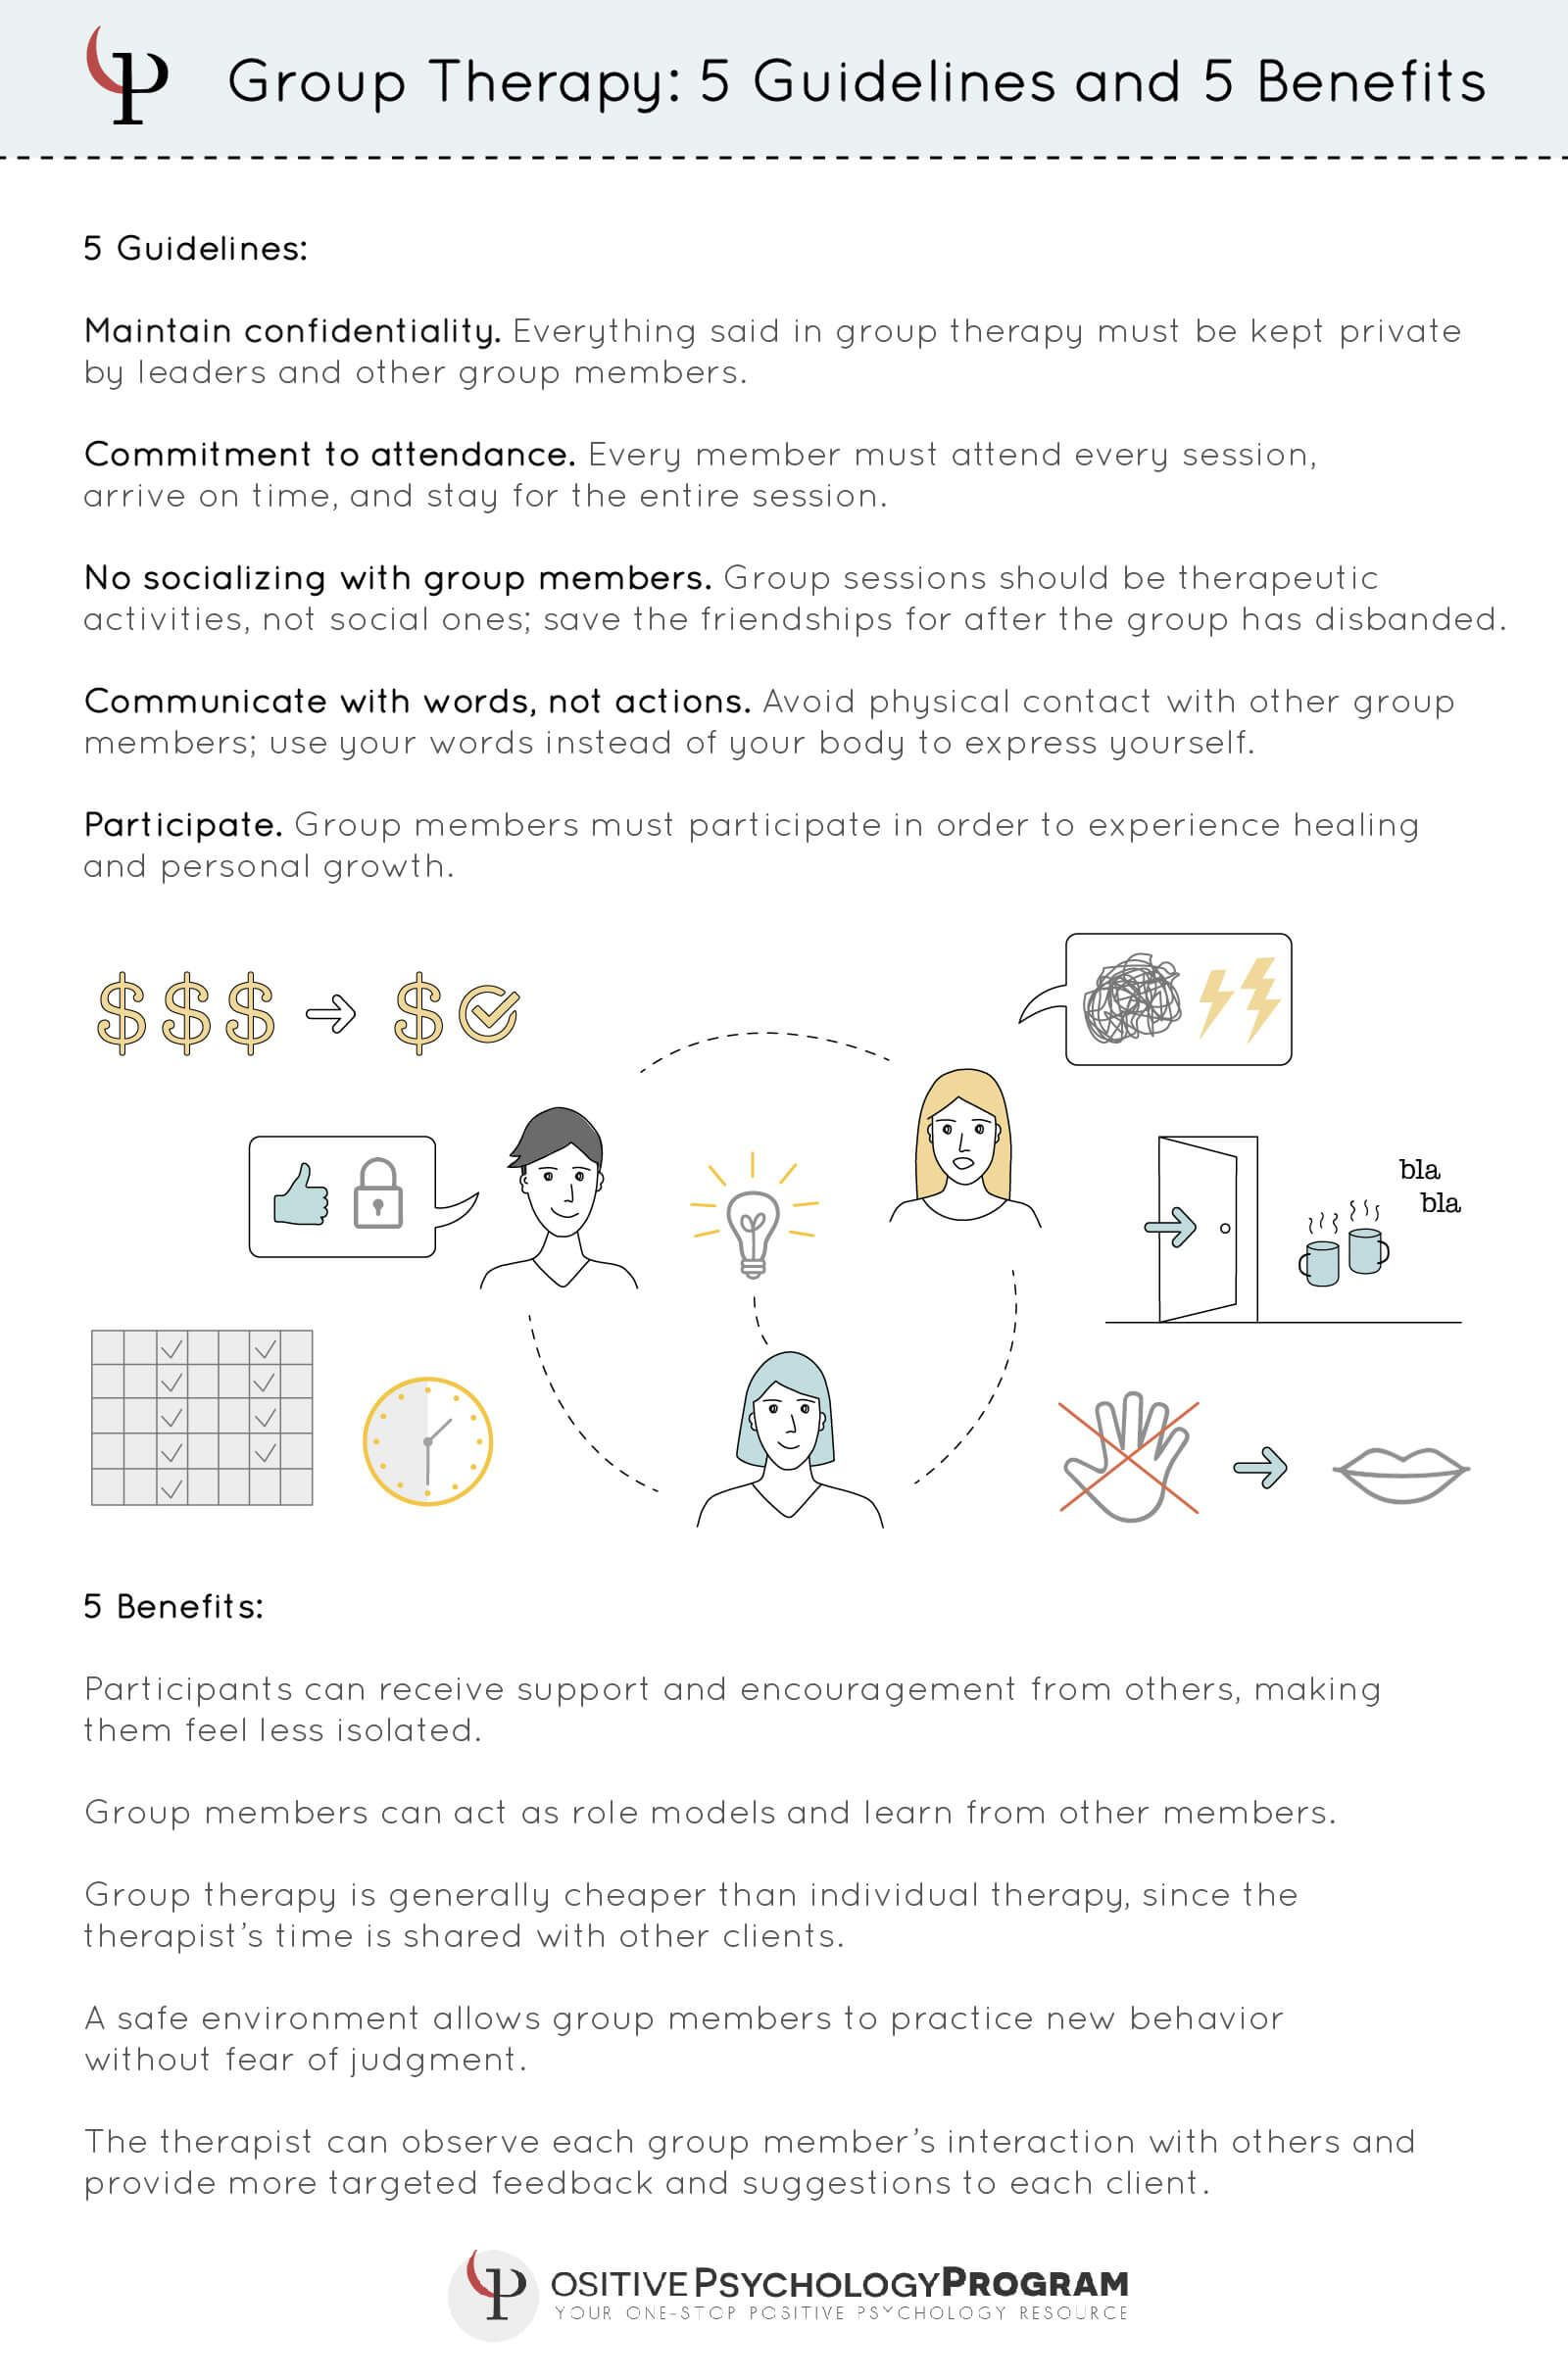 Group Therapy Guidelines And Benefits